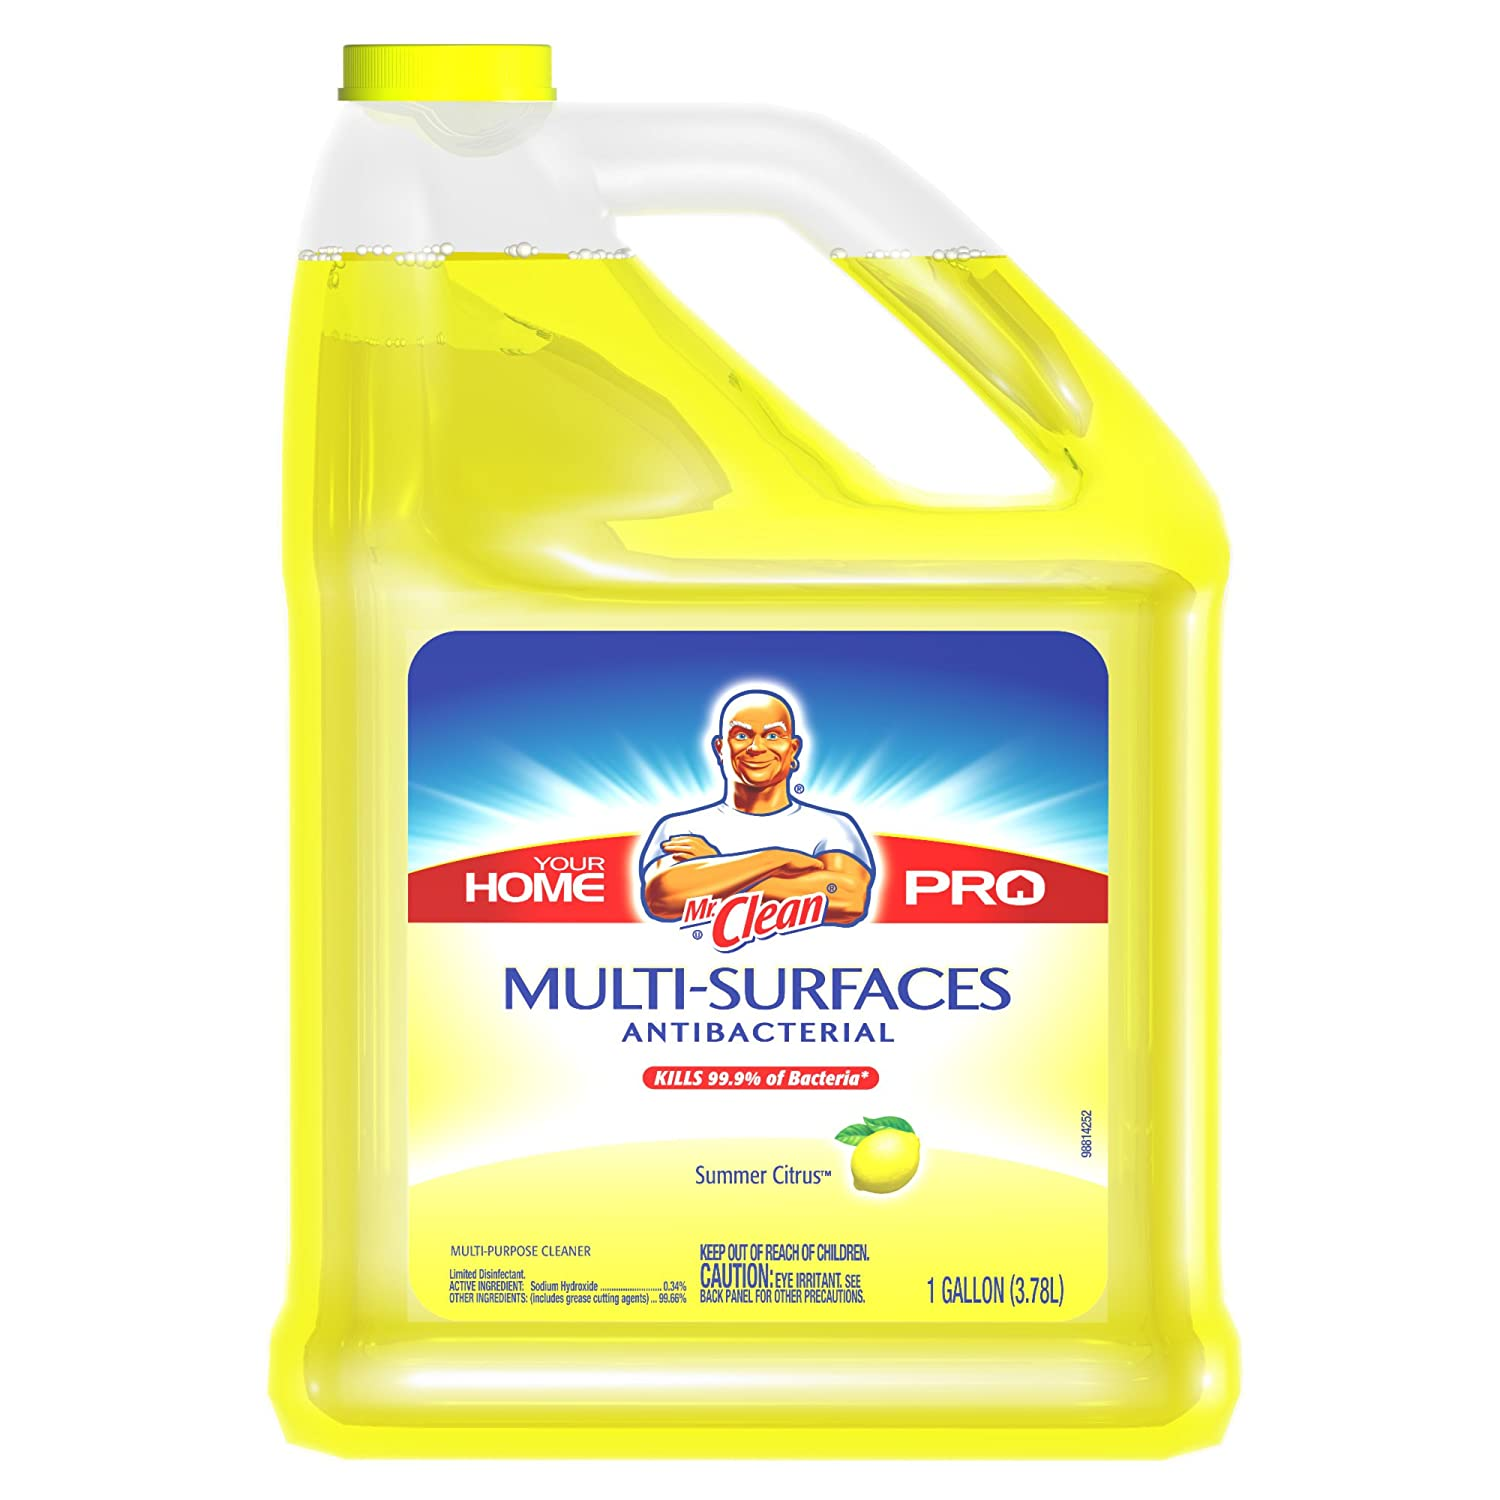 Mr. Clean Multi-Surfaces Summer Citrus Antibacterial Liquid Cleaner, 128 Fluid Ounce Bottle $7.90